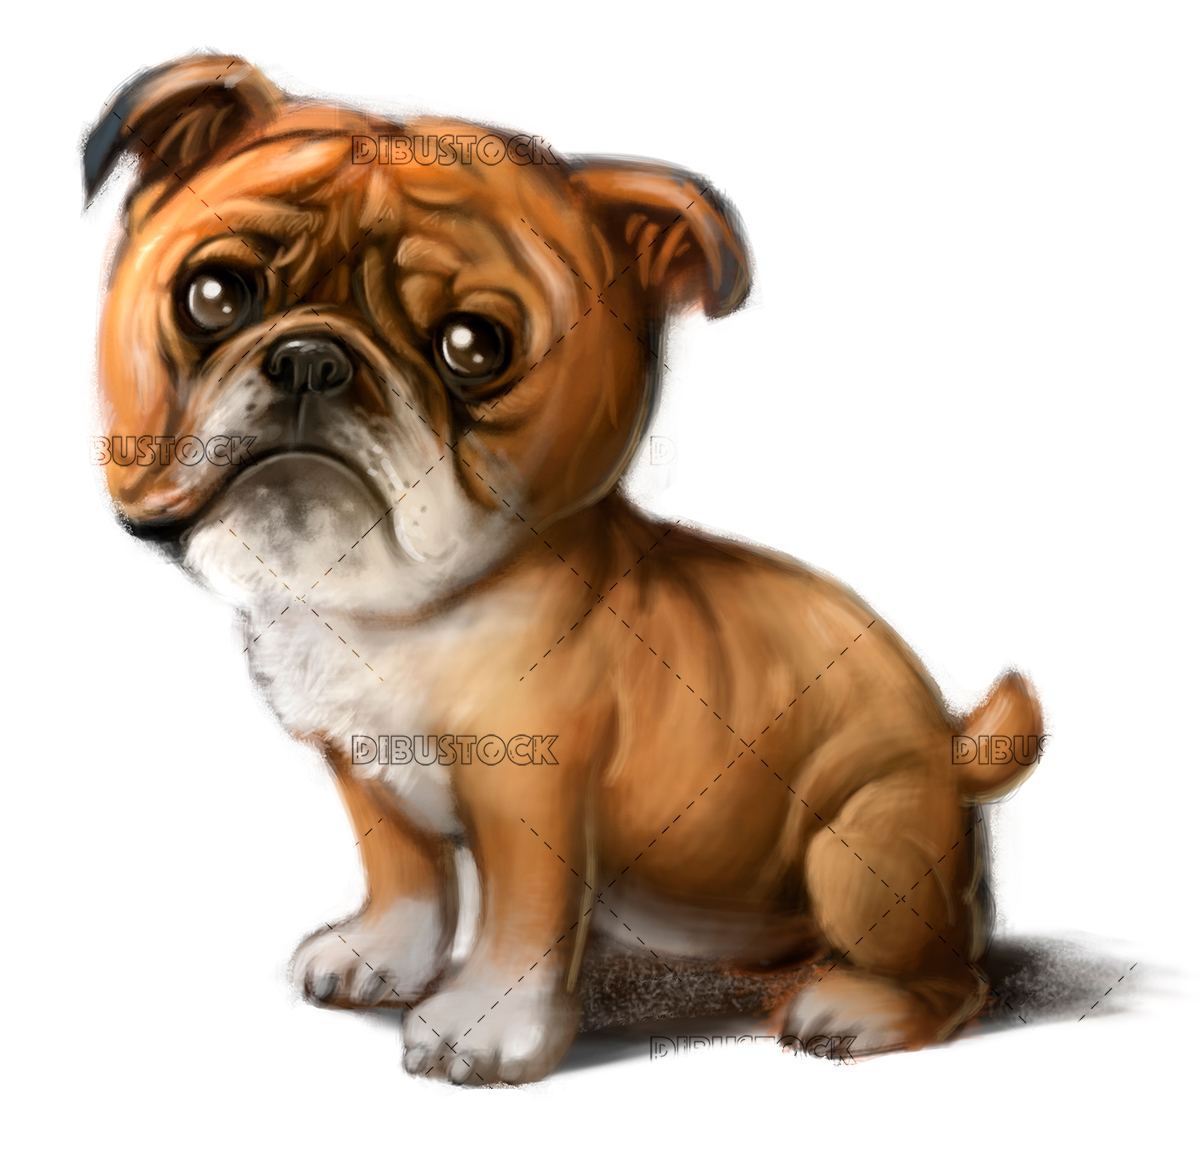 Breed of Bulldog